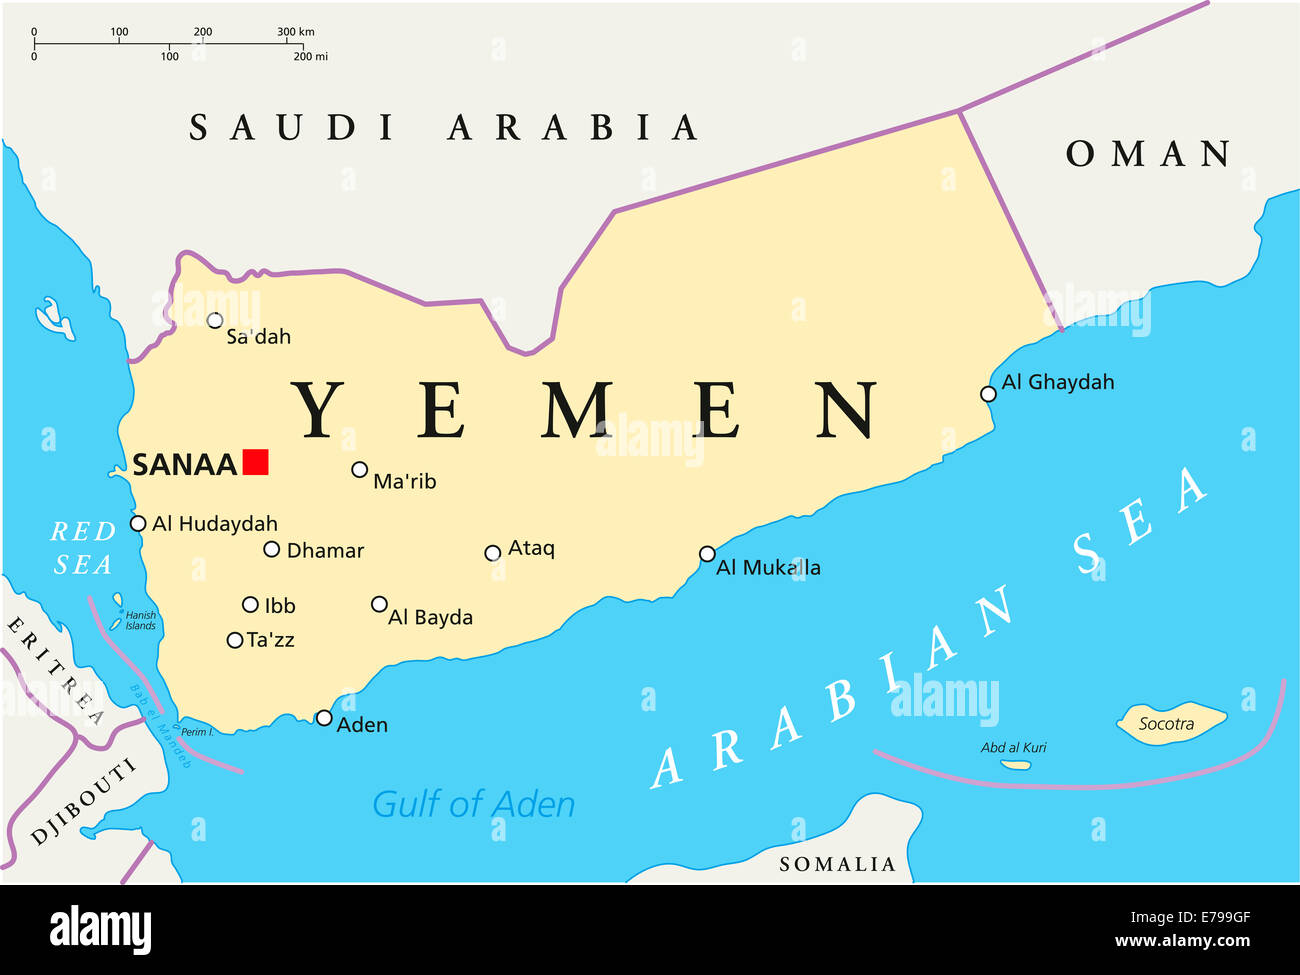 Gulf Of Aden Map Stockfotos & Gulf Of Aden Map Bilder - Alamy